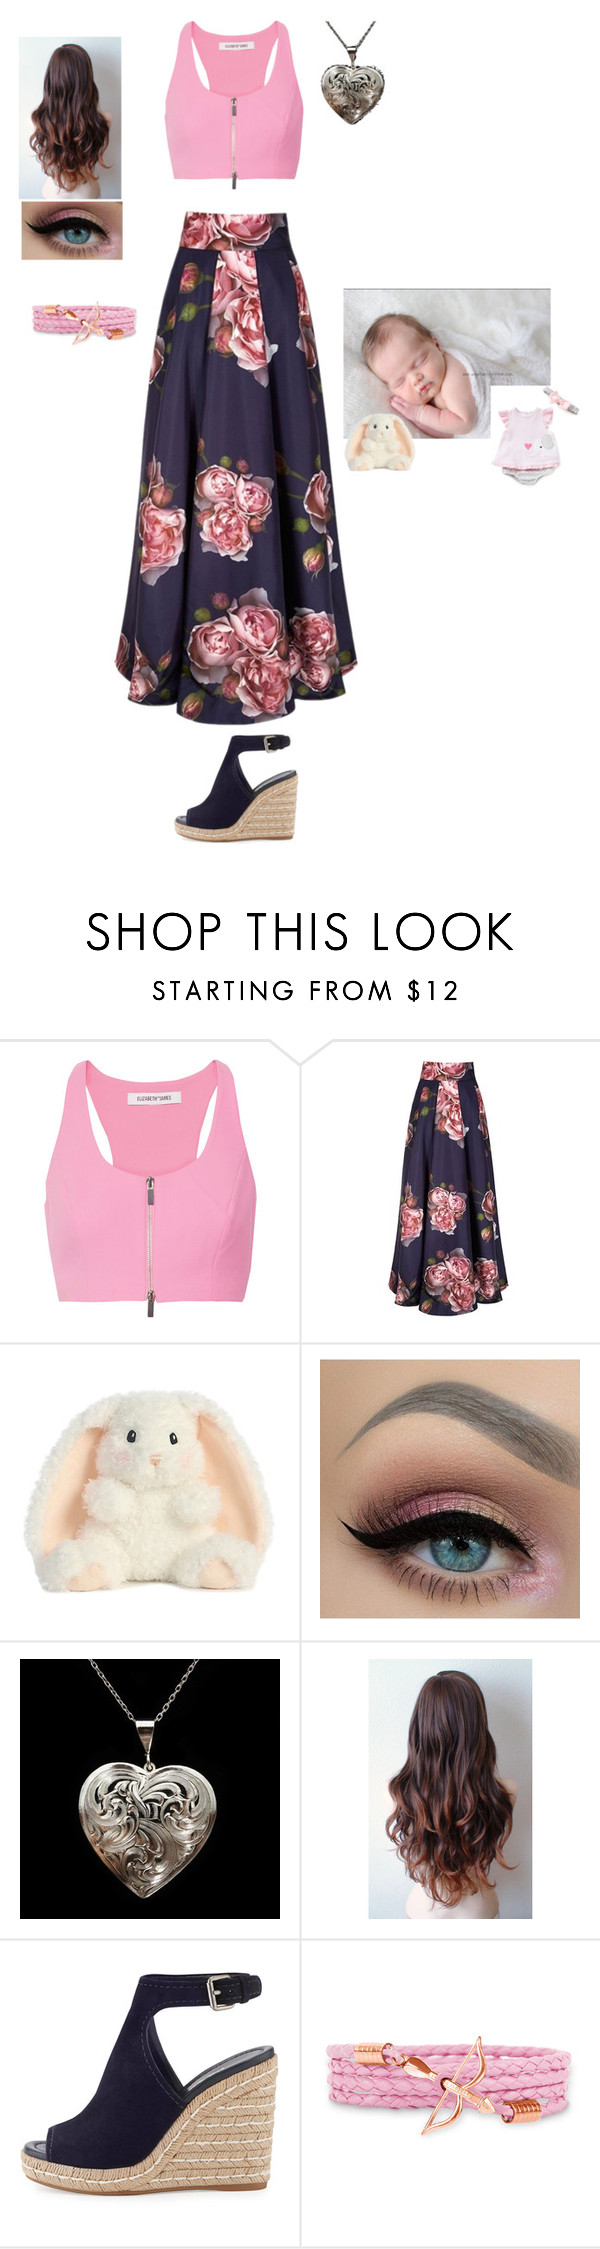 """""""Dinner with My Brother"""" by thisisme129 ❤ liked on Polyvore featuring Elizabeth and James and Prada"""